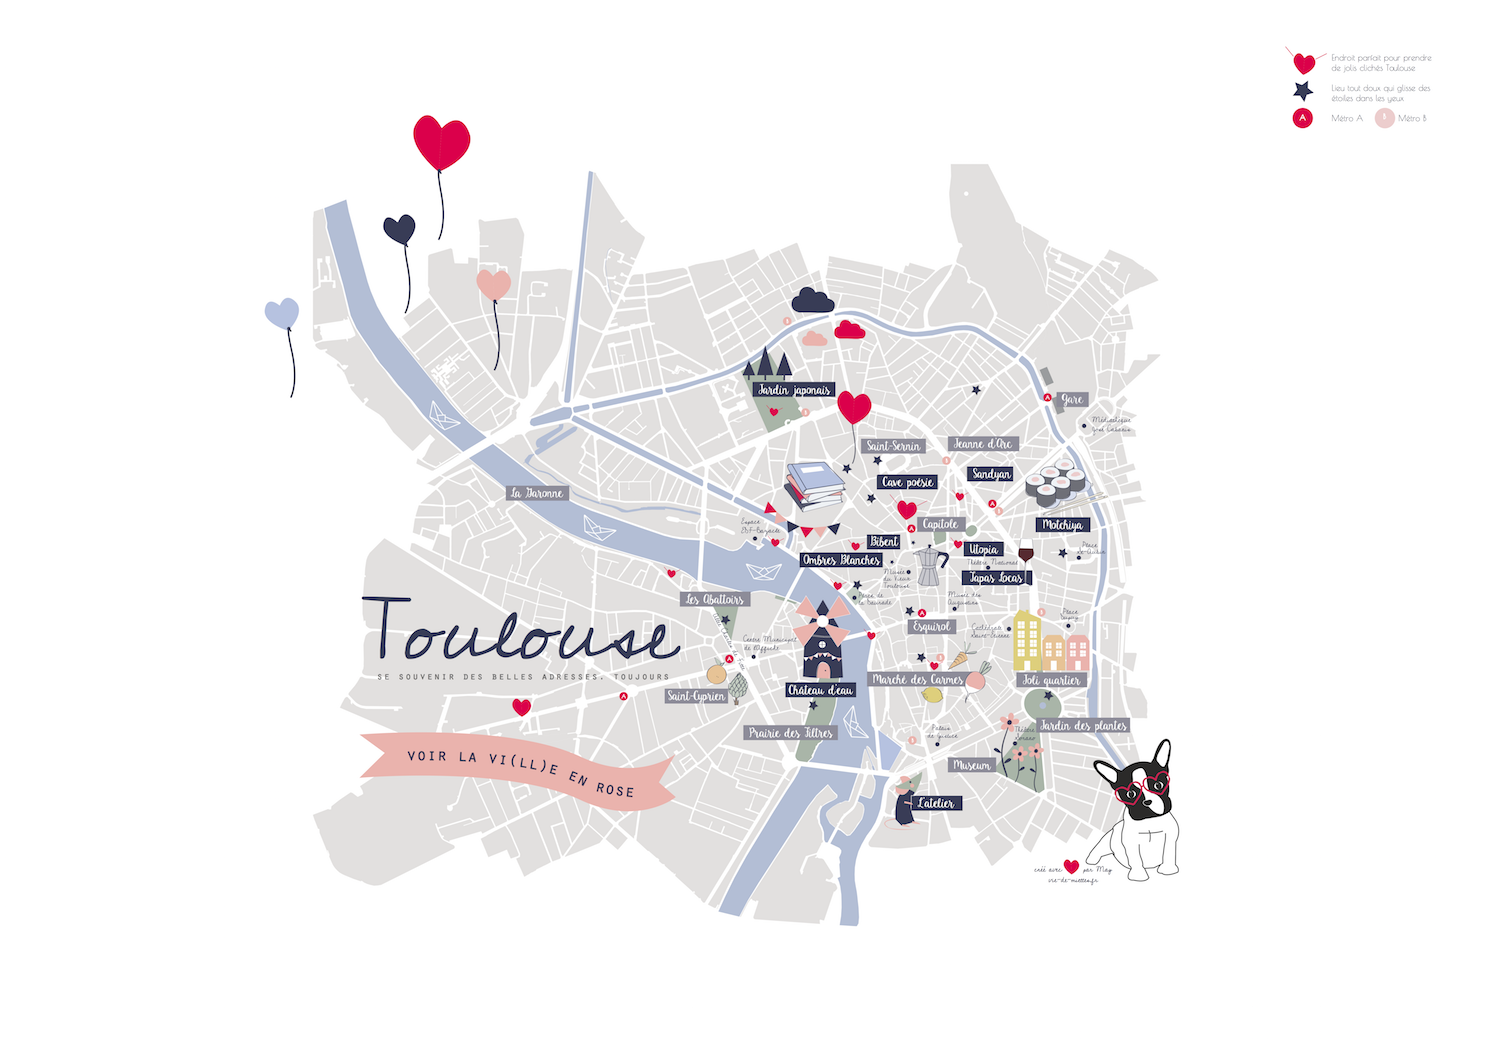 Plan de Toulouse illustré